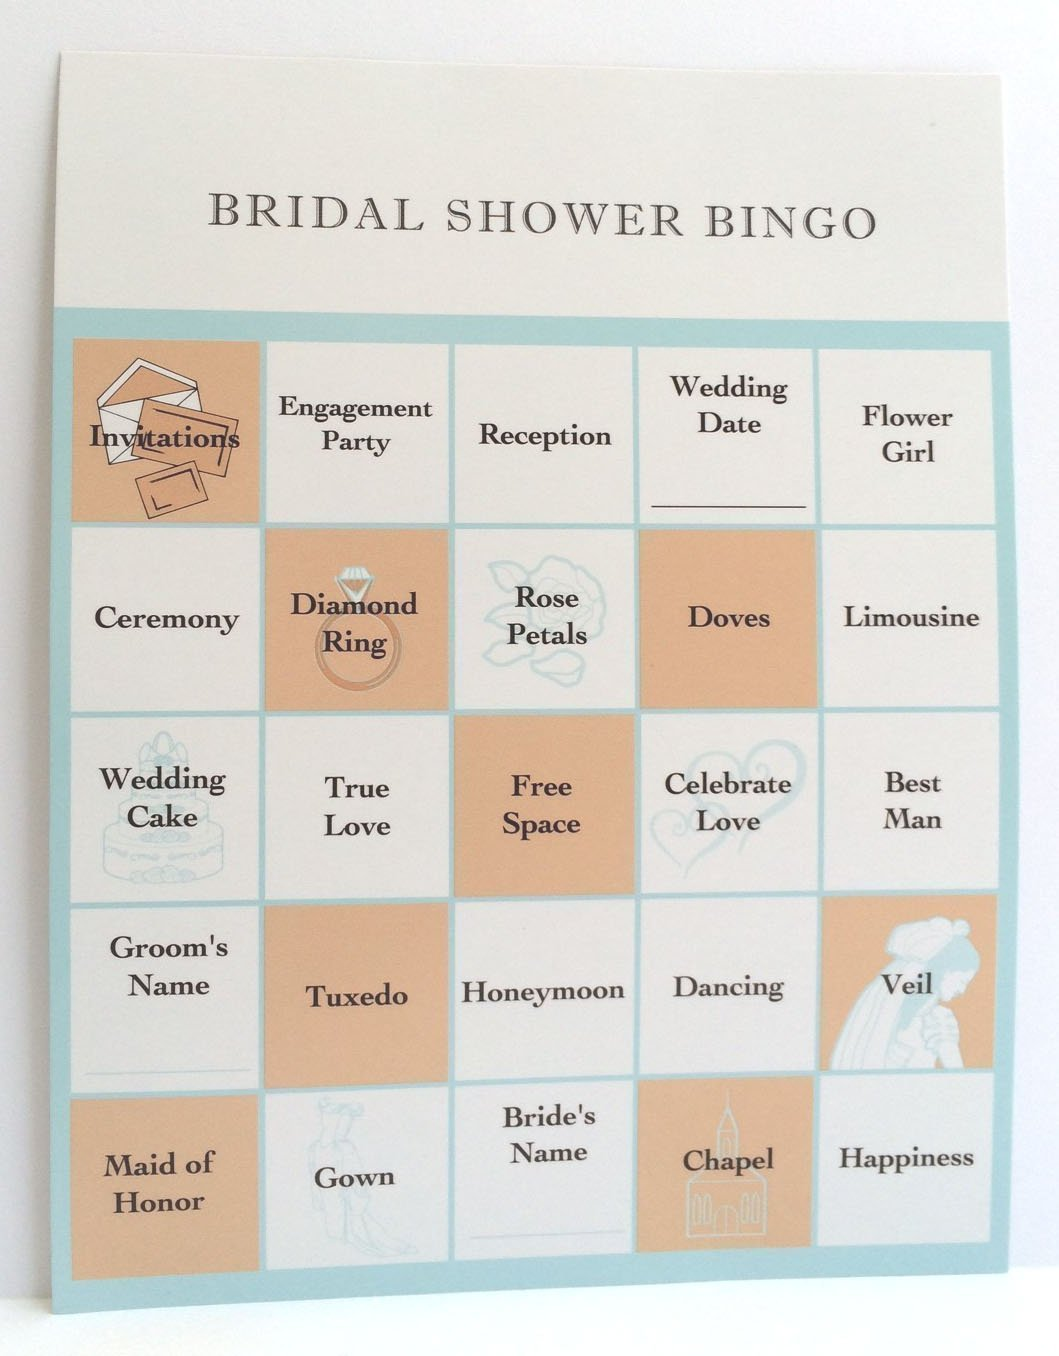 2 Pack Bingo Cards for 48 Guests Fun for Everyone,Blue and Peach SG/_B0127QCZ5M/_US Easy to Play Victoria Lynn Bridal Shower Party Games